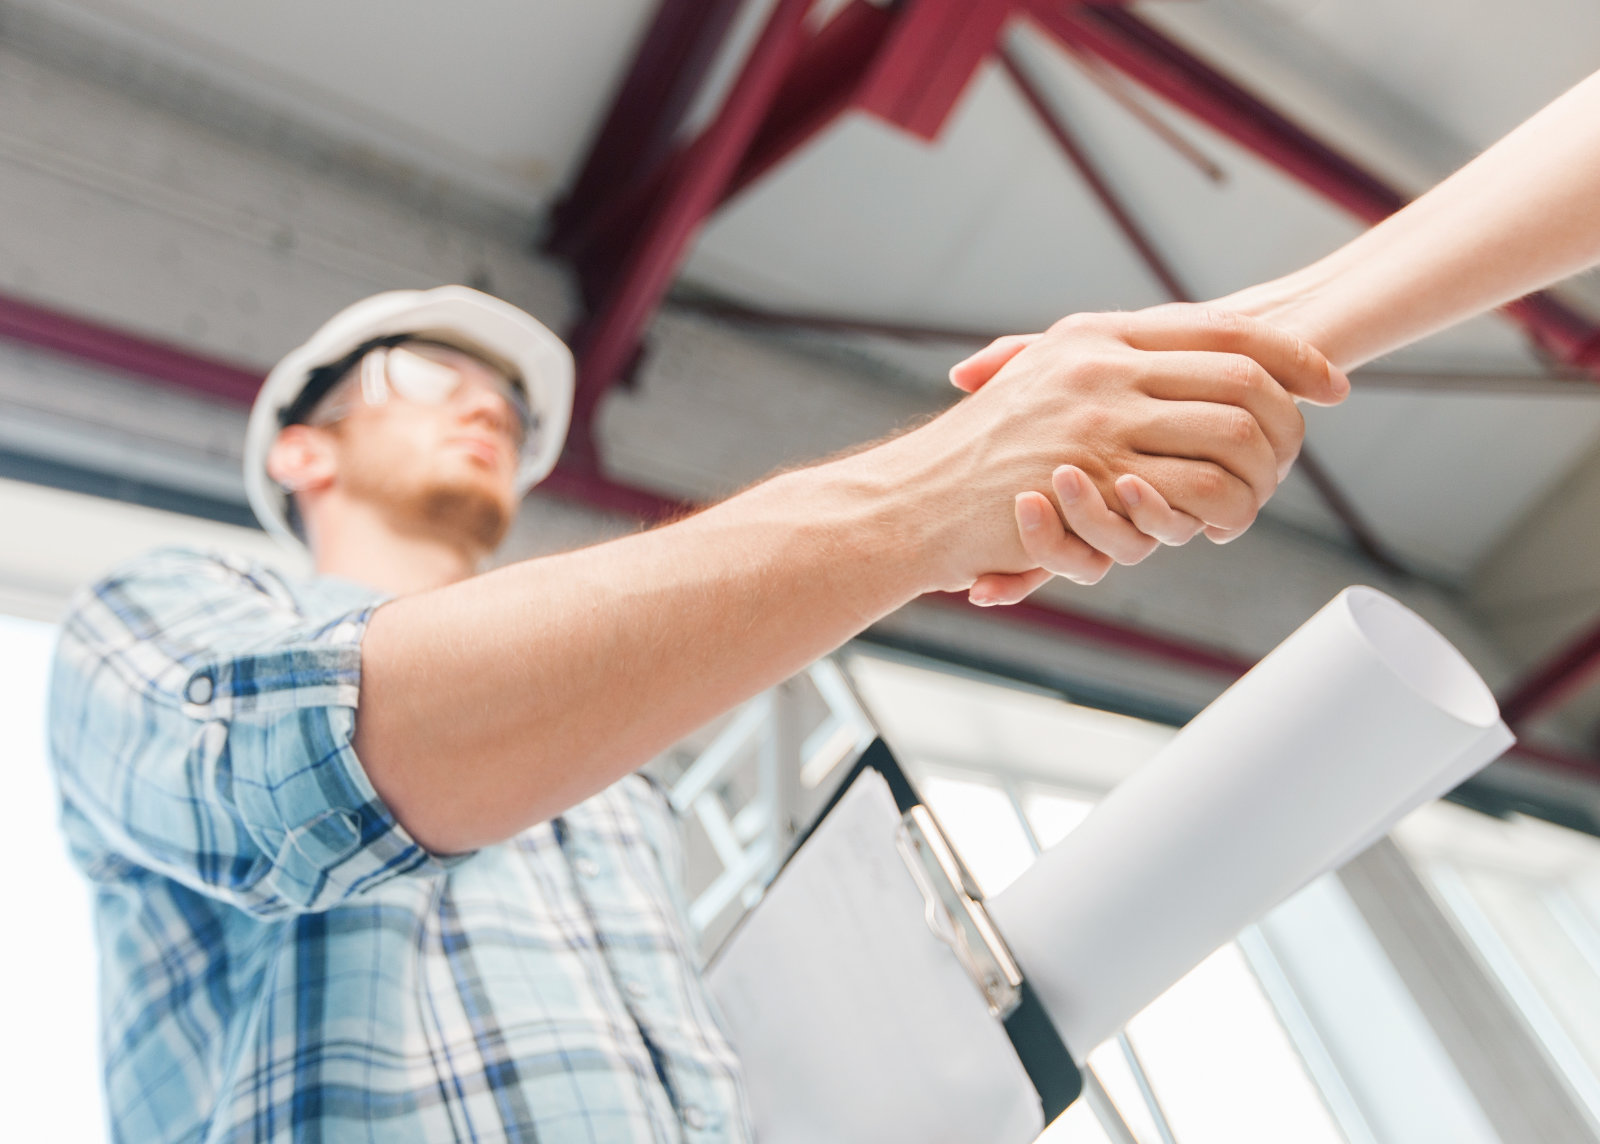 Tips for Choosing a Reputable Home Builder